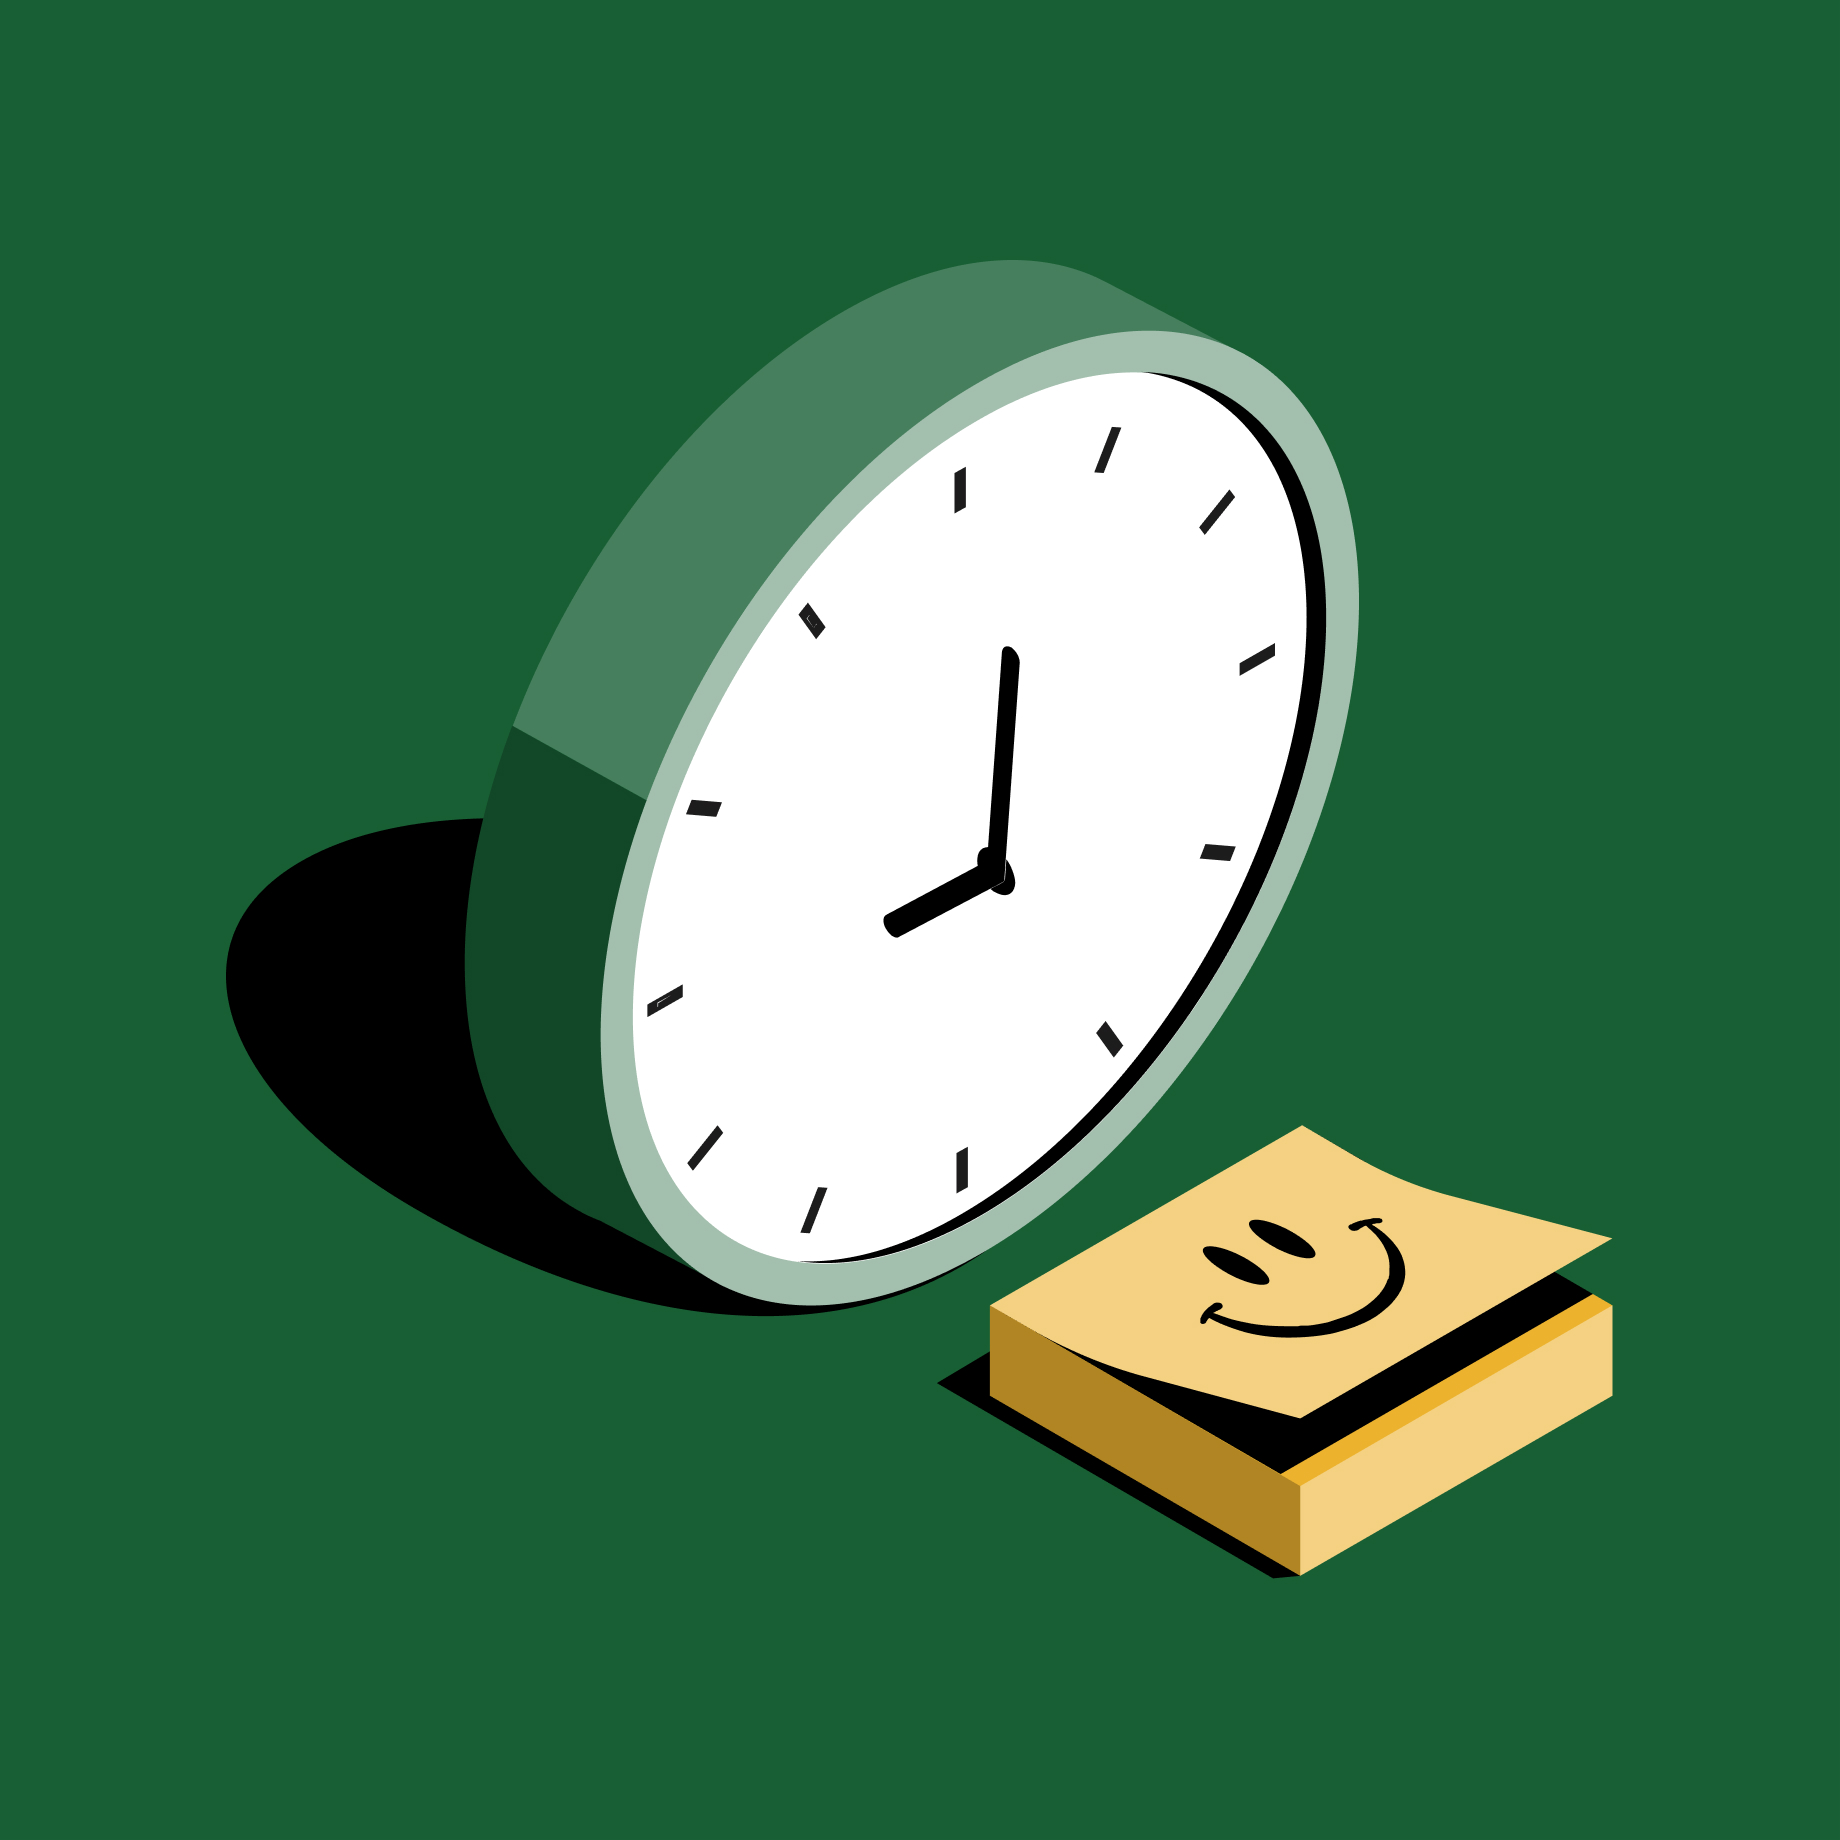 Clock icon next to notepad with smile drawing